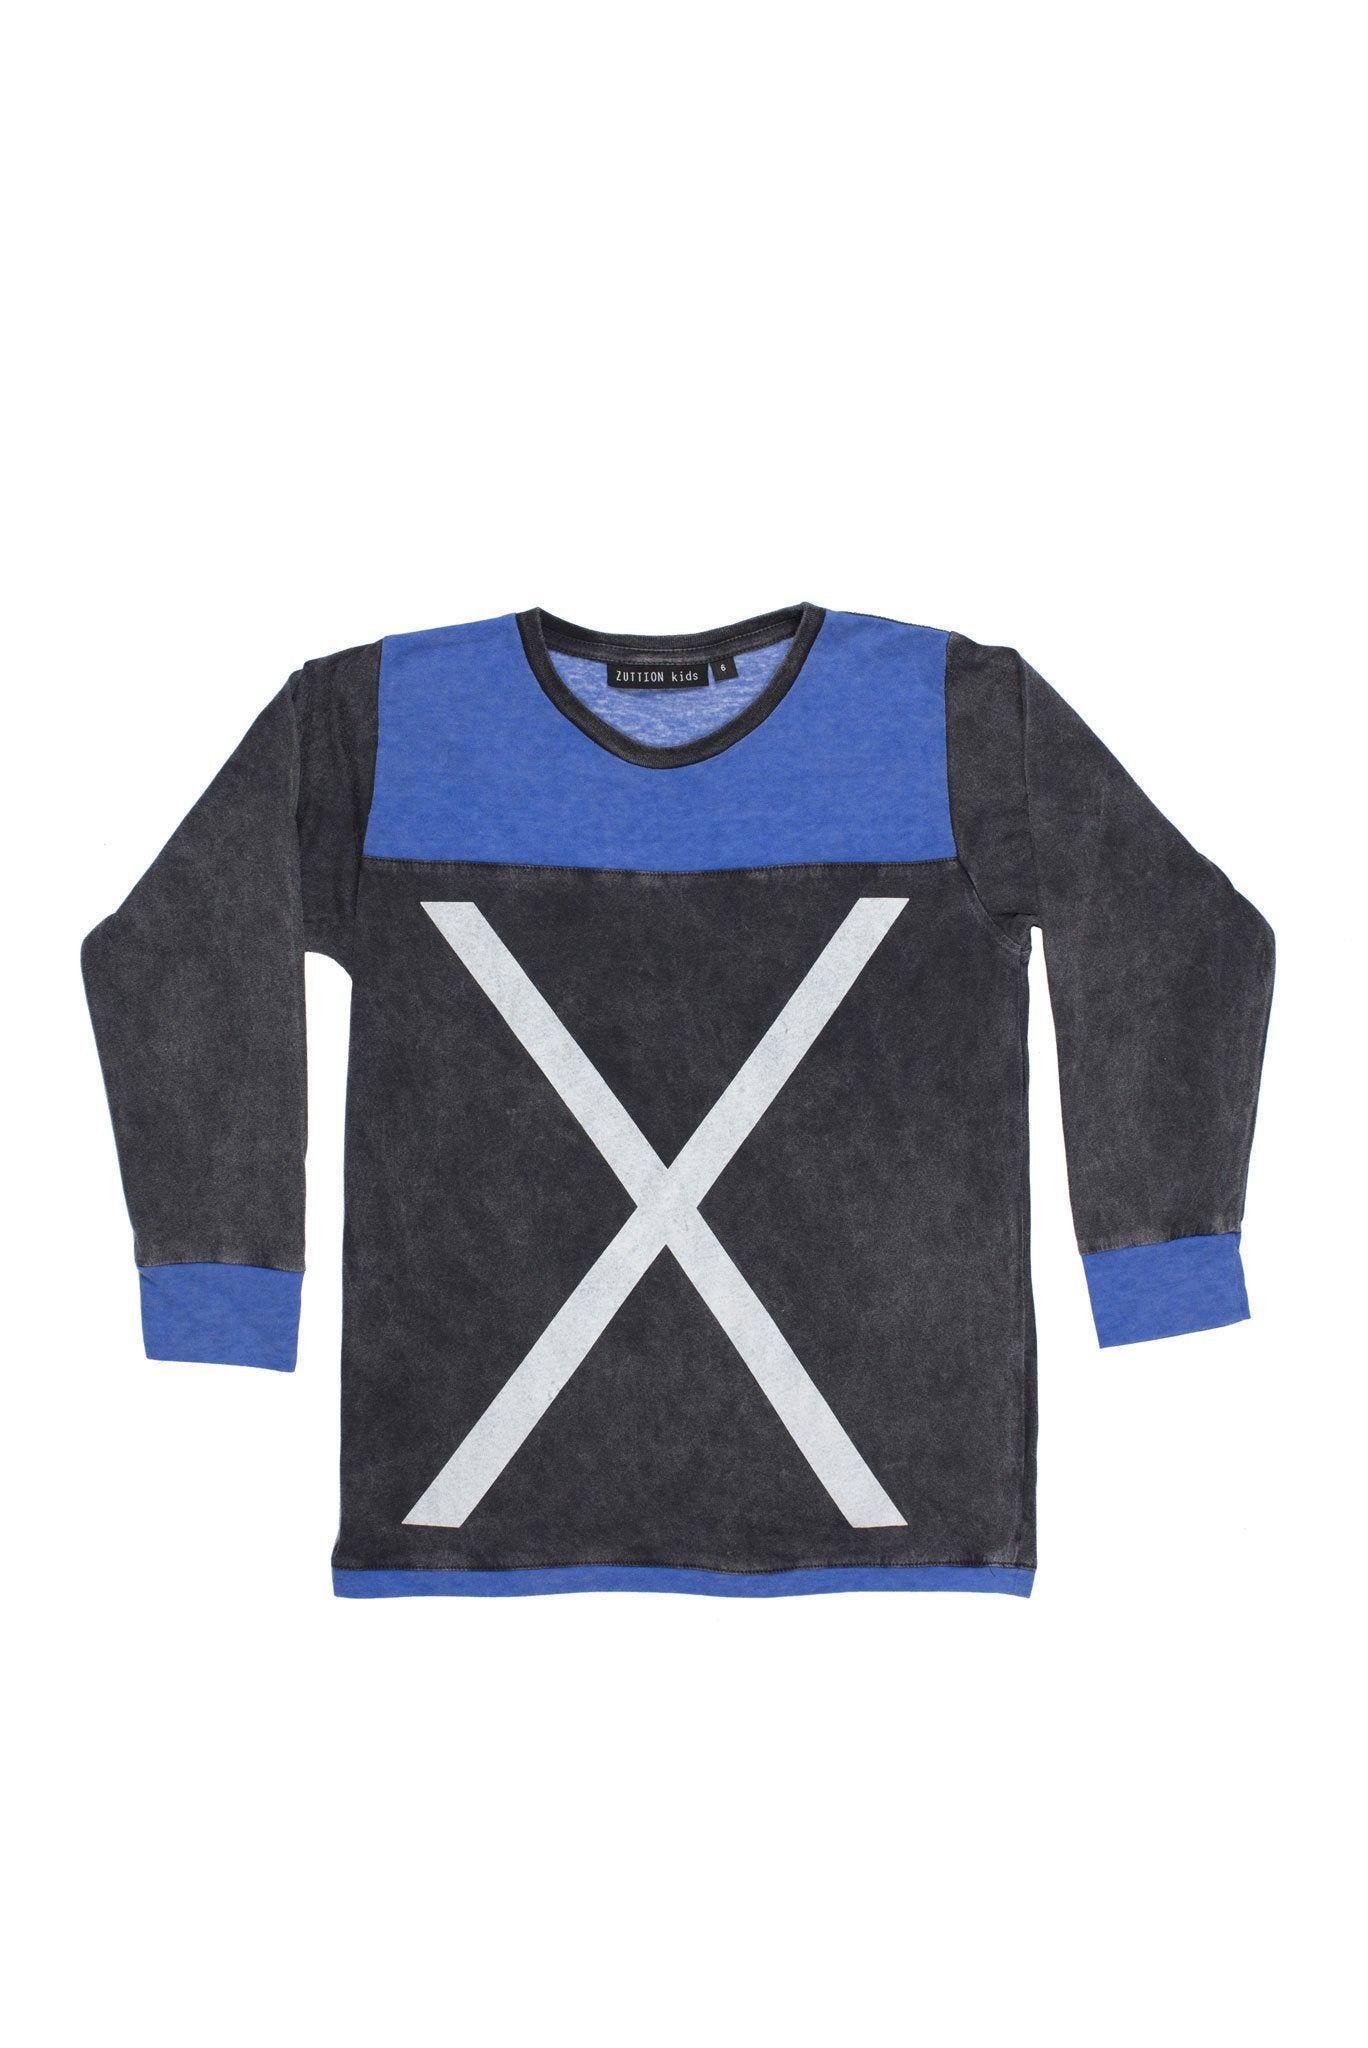 X Long sleeve Raglan by Zuttion | Sweet Threads